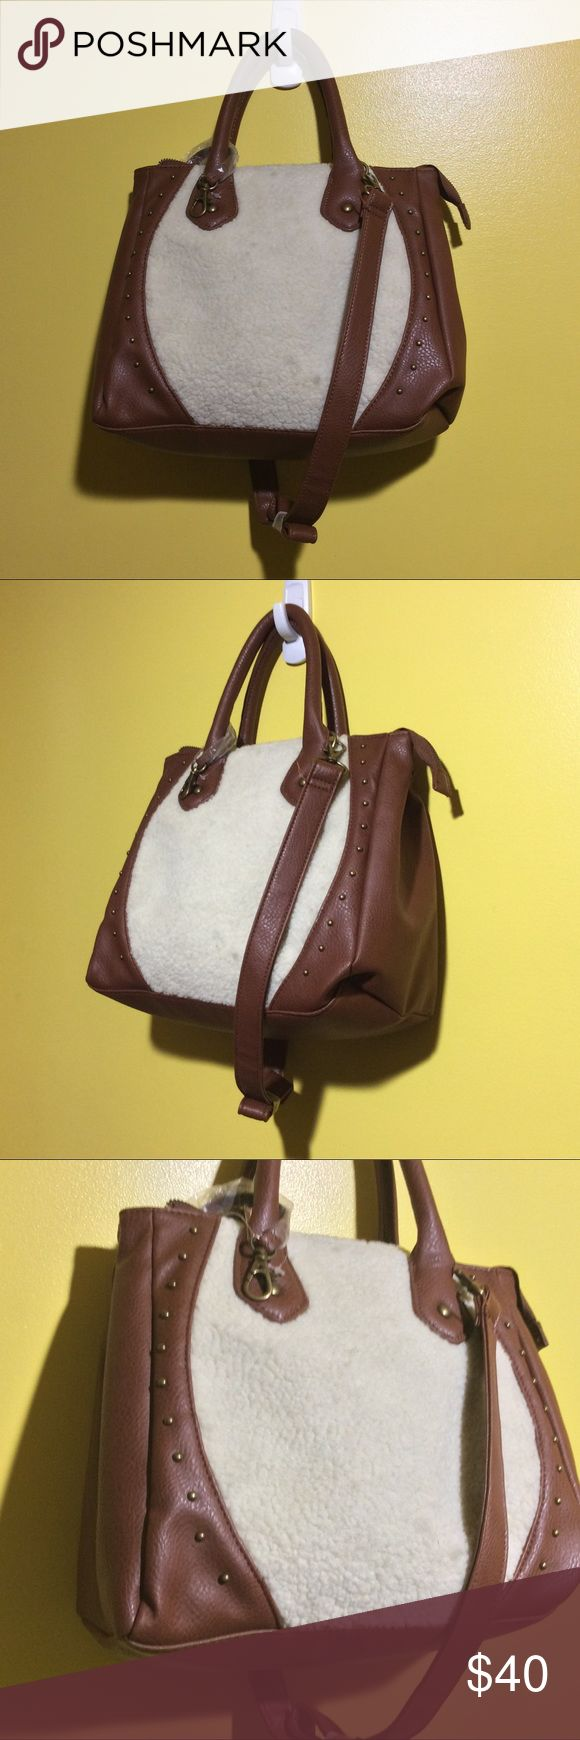 Brown/Cream Wool and Leather Carlos Santana bags Brand New With Tags brown and cream with copper studs Carlos Santana Handbag. This handbag is wool and leather and it comes with a wool coin purse. Leather wrapped handles and a leather shoulder strap. Zipper closer and side clips Carlos Santana Bags Shoulder Bags